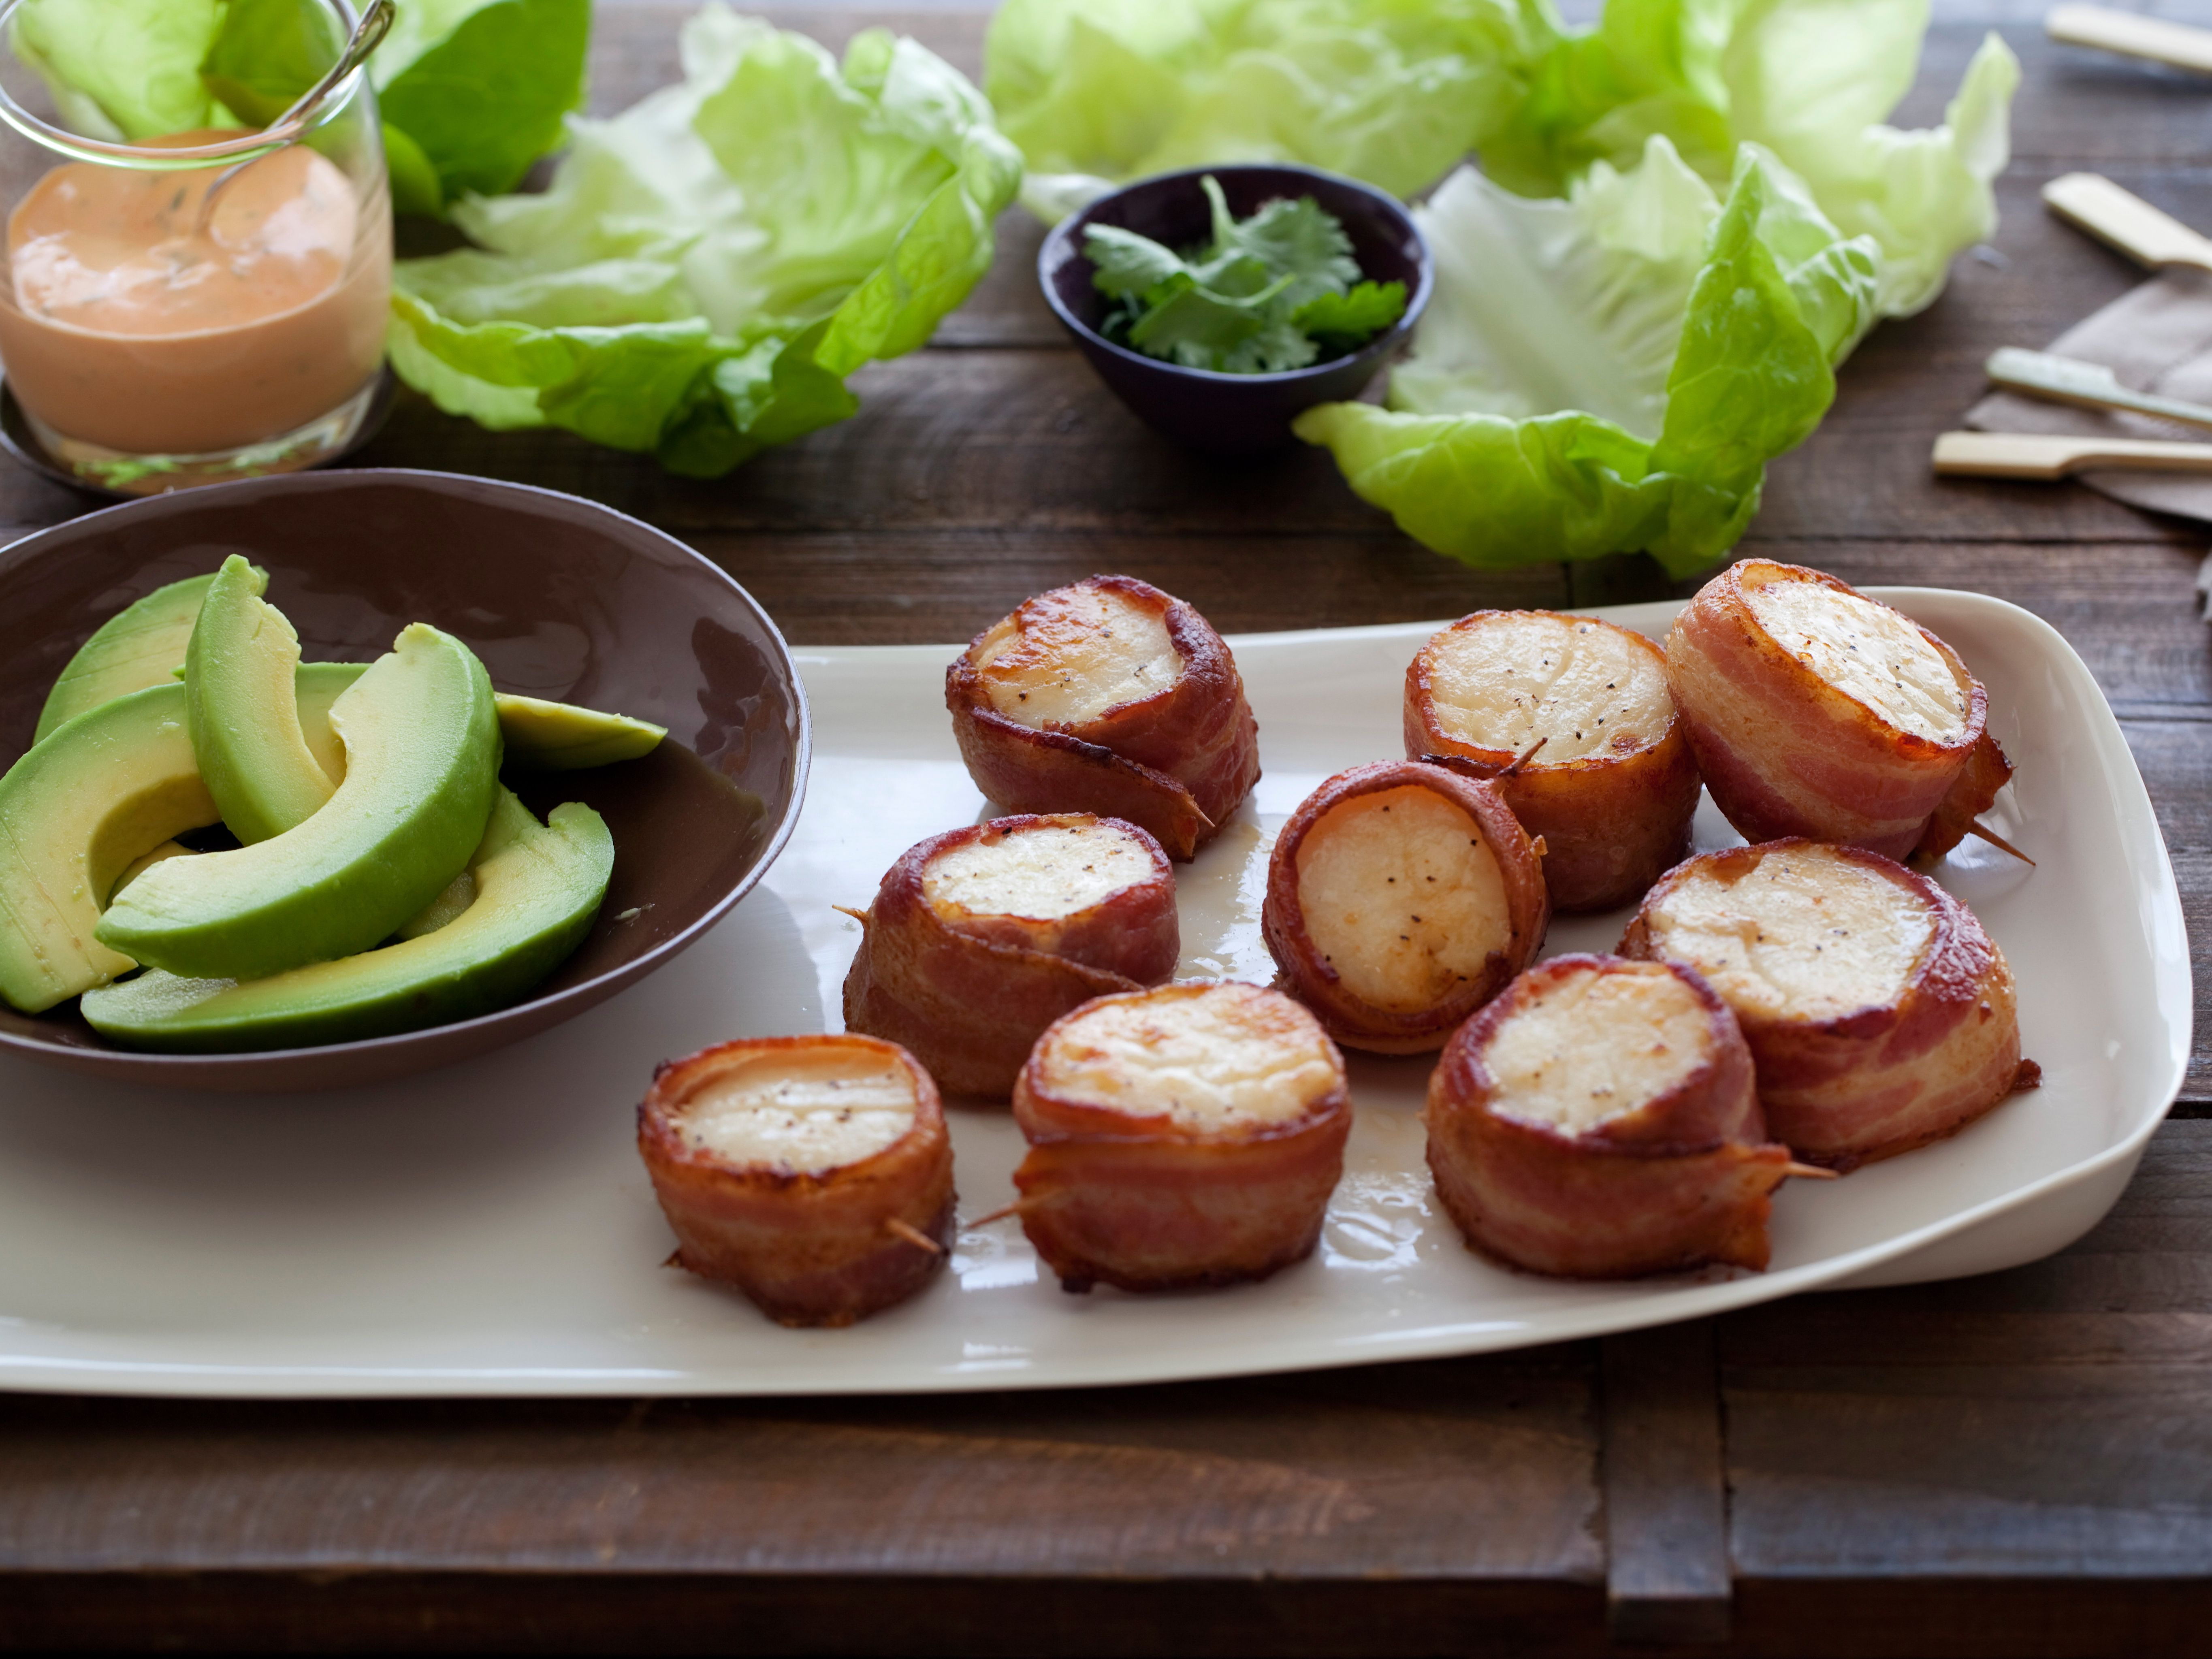 Bacon Wrapped Scallops with Spicy Mayo. hardest part is finding decent scallops!